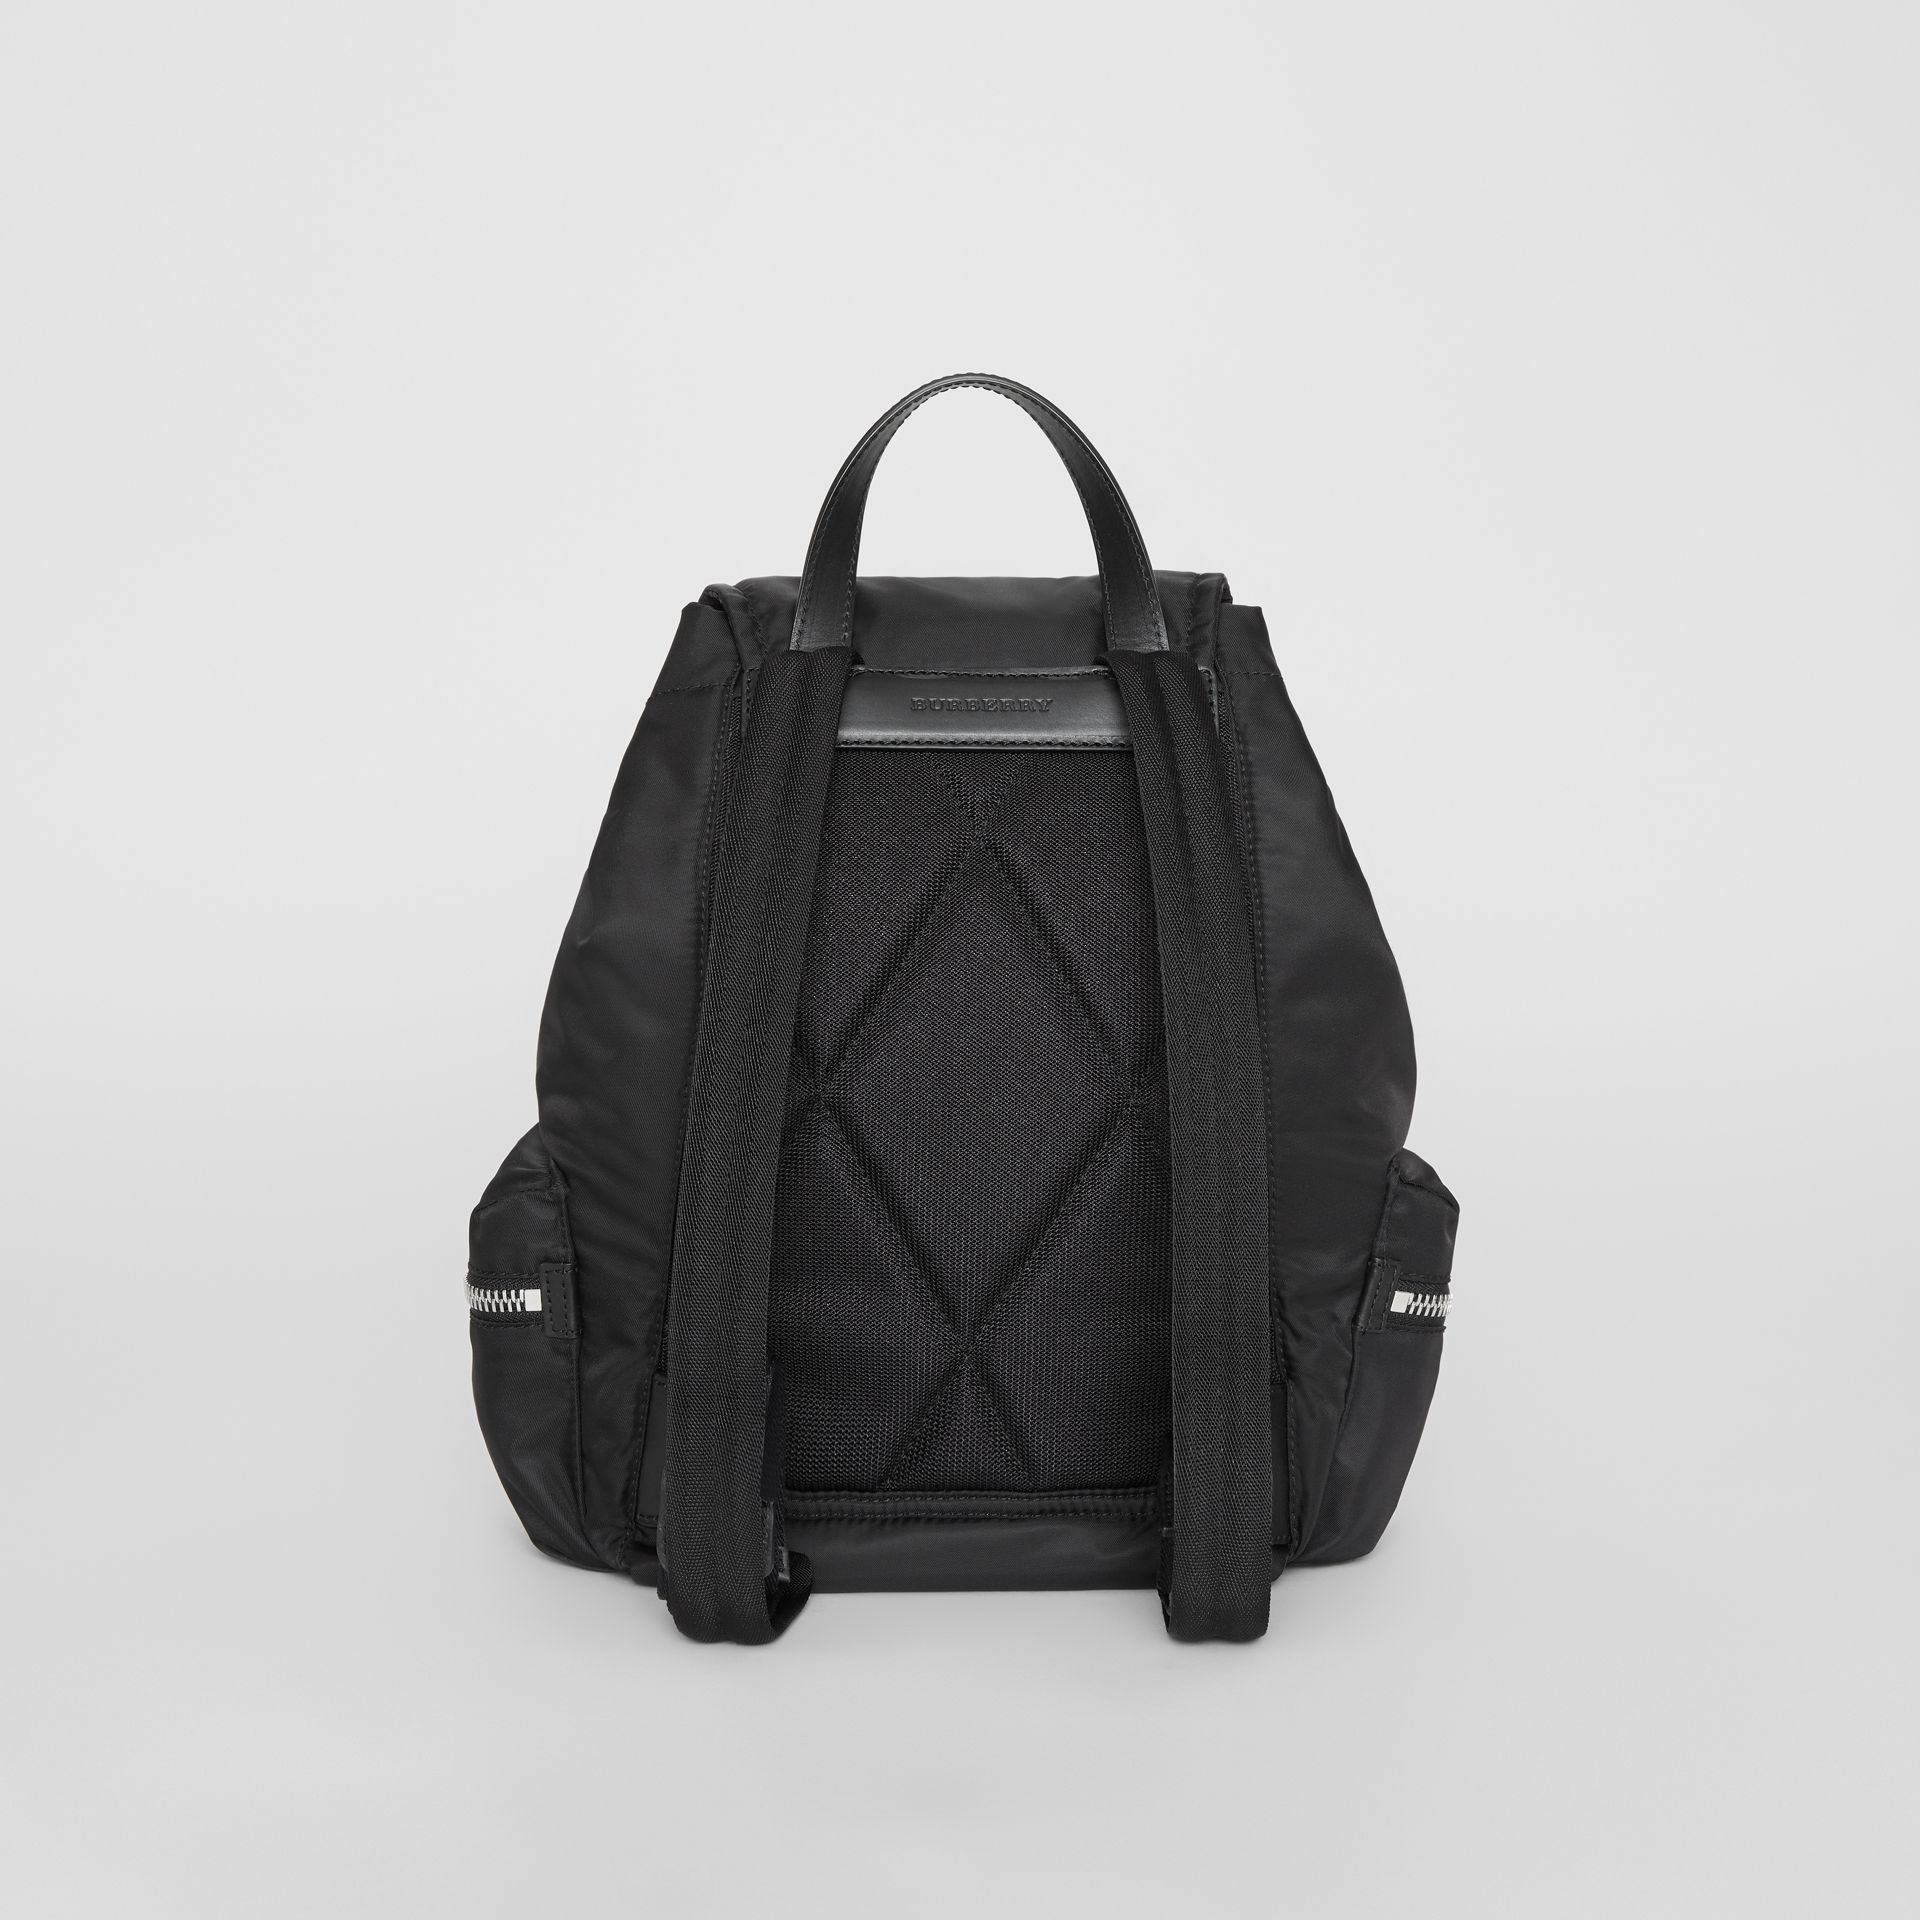 Sac The Rucksack moyen en nylon et cuir (Noir) - Femme | Burberry - photo de la galerie 7